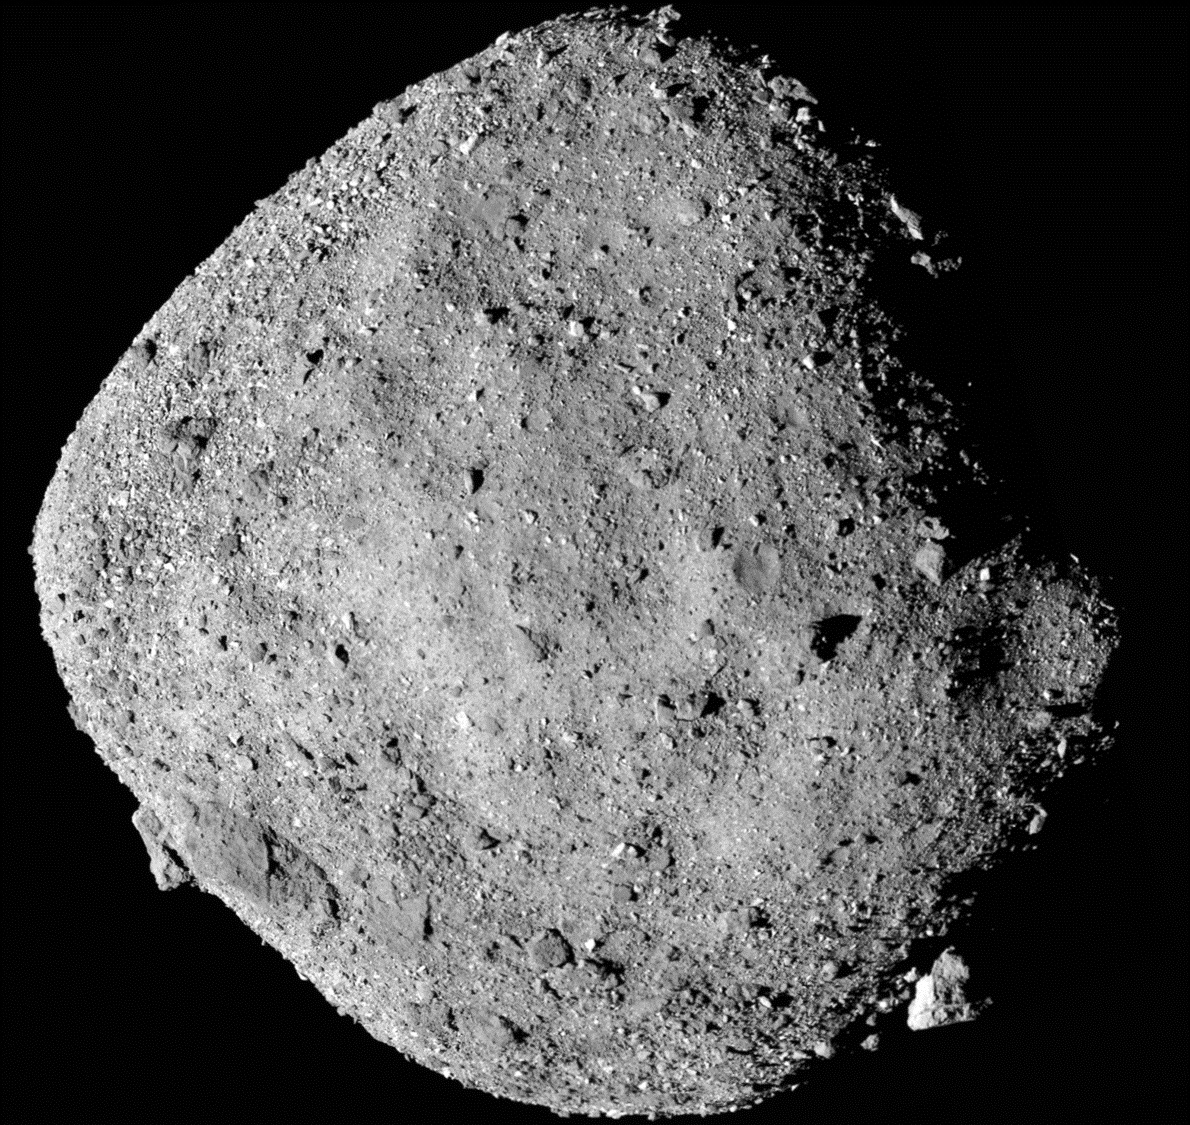 Asteroid Bennu, another HPT-compliant flying pile of rubble